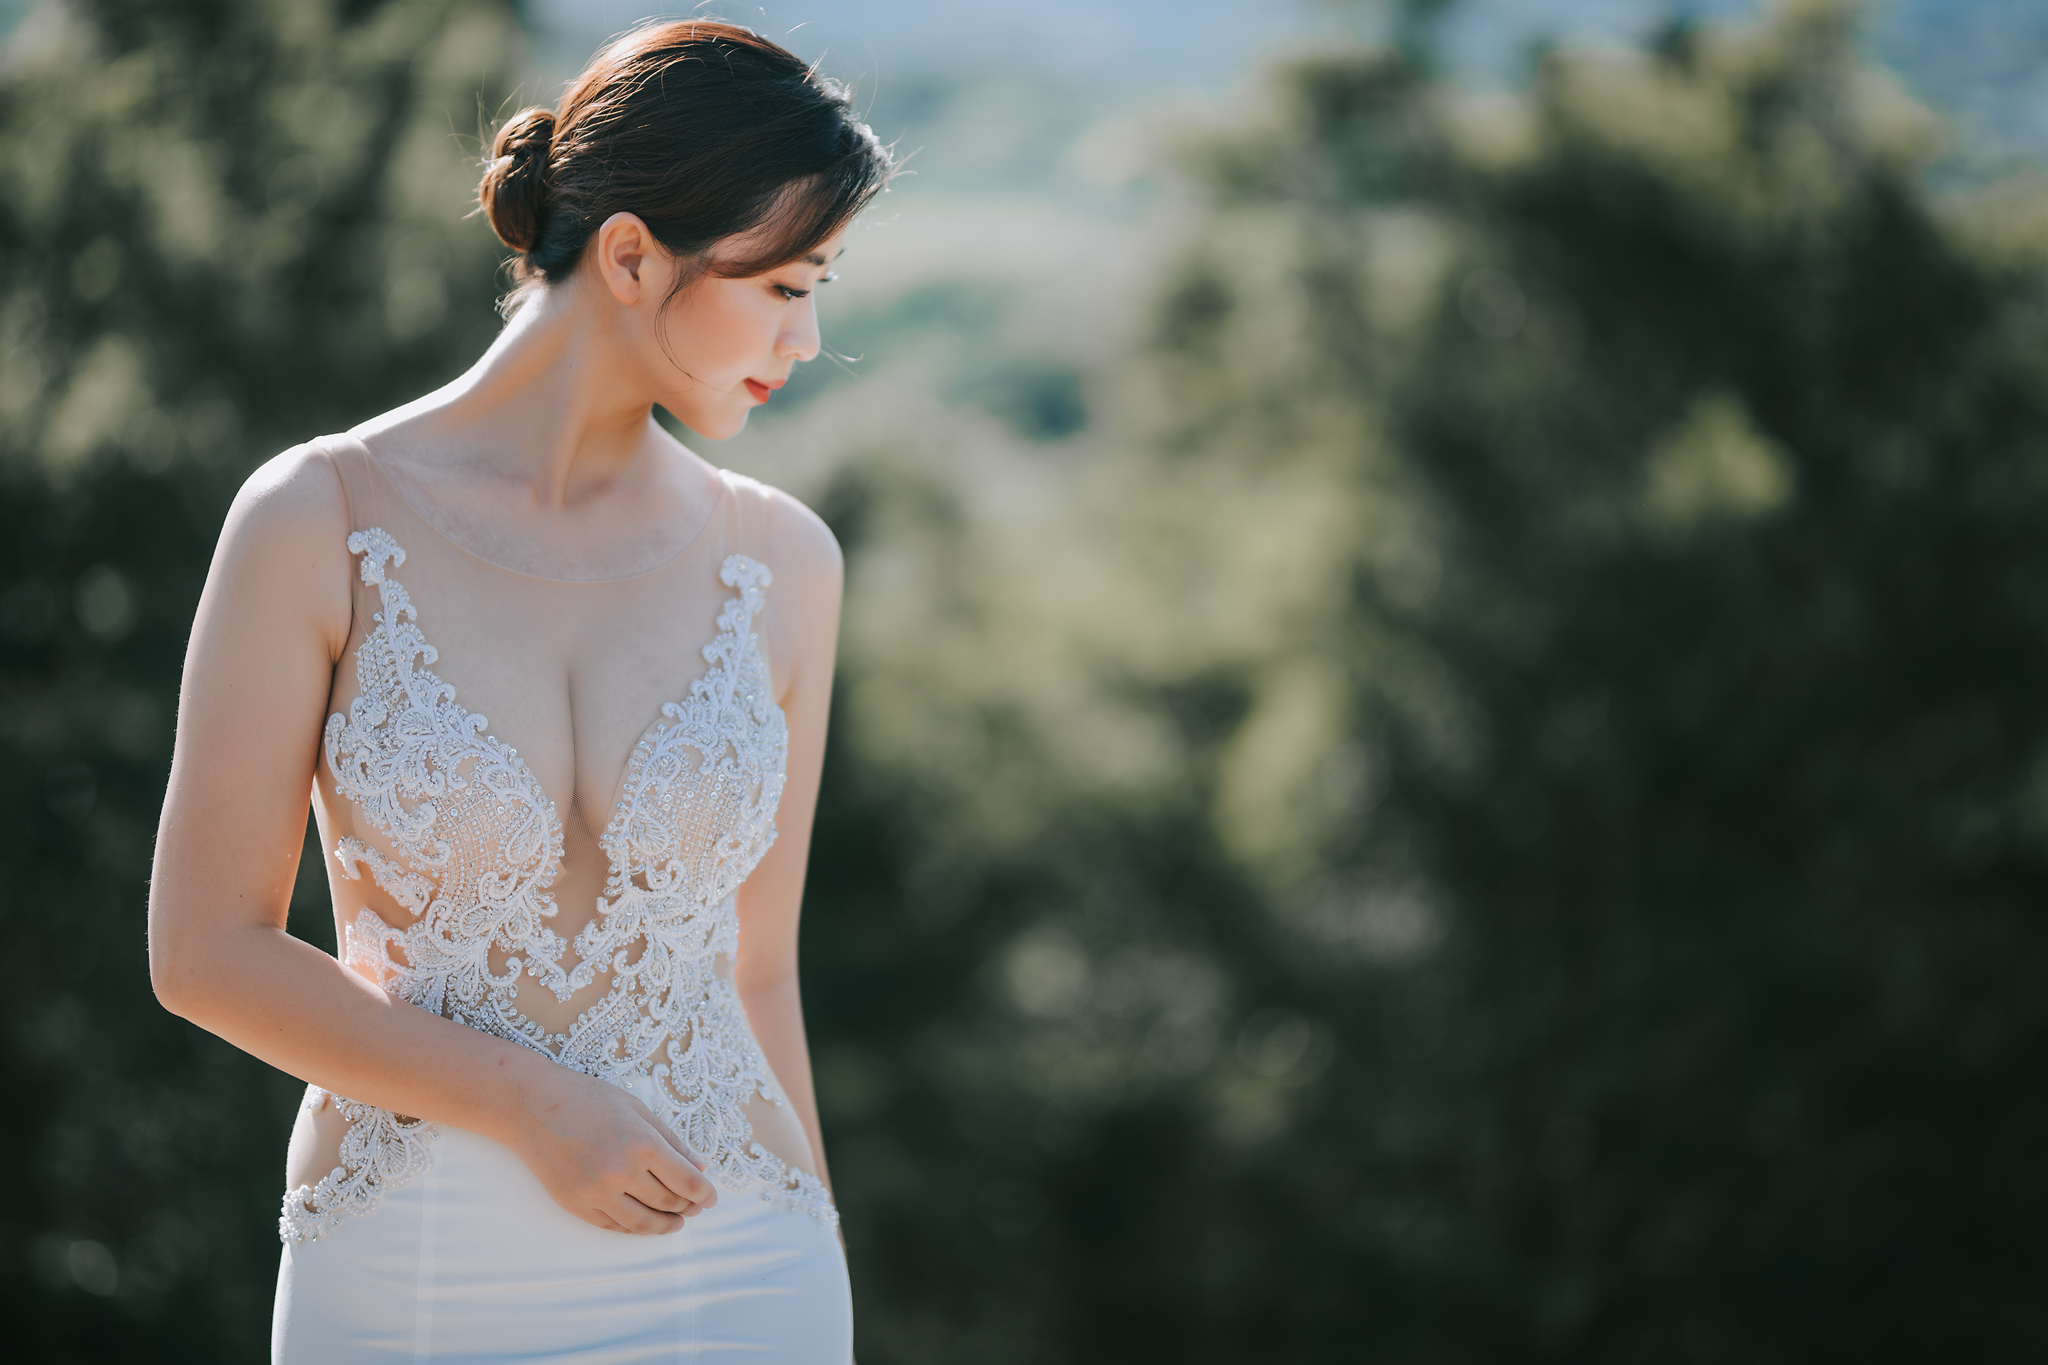 Bride in plunging lace applique dress with see through bodice - photo by Edwin Tan Photography